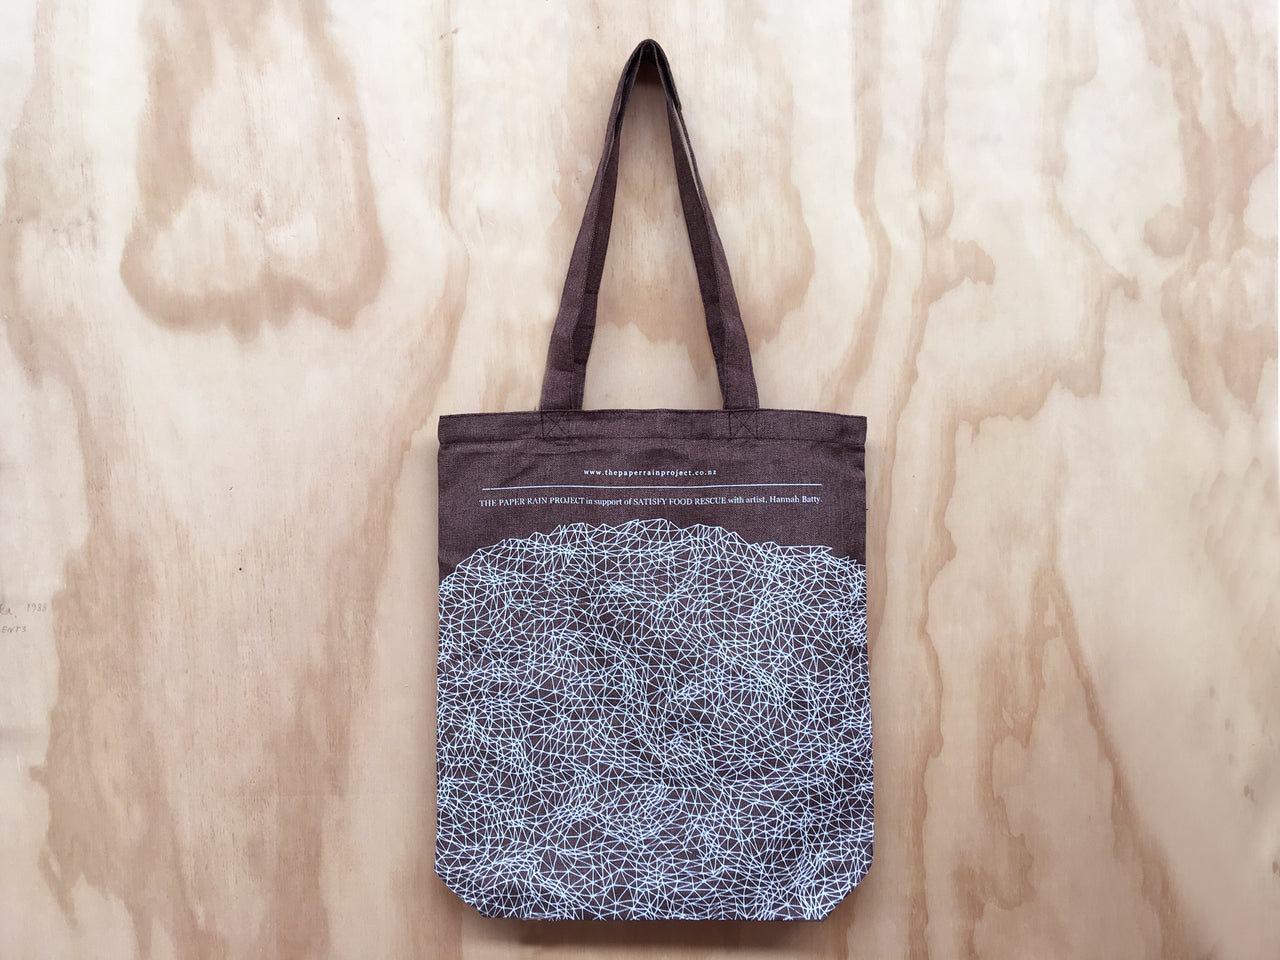 Kete, tote bag in support of Satisfy Food Rescue